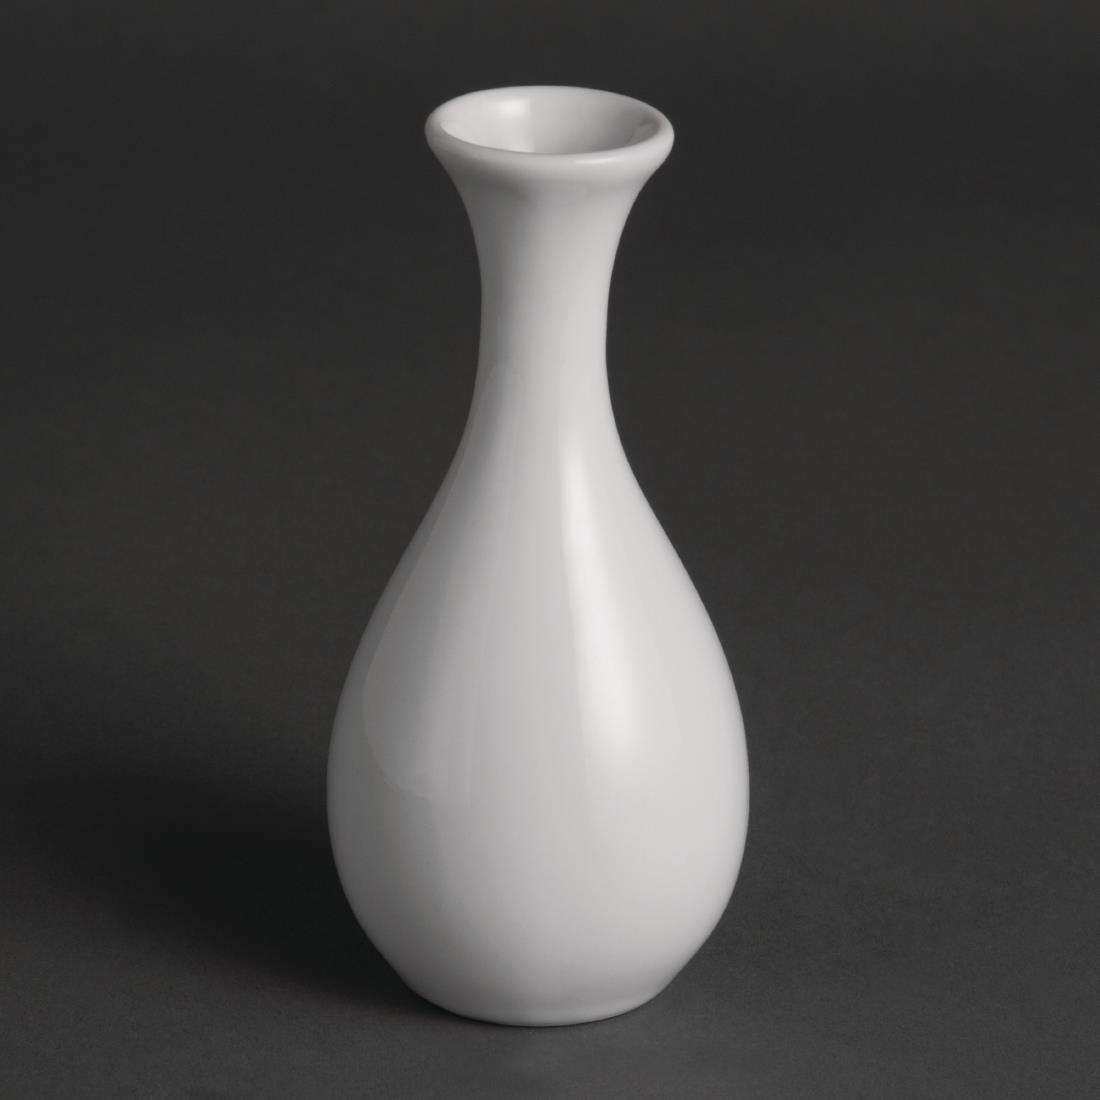 Olympia Whiteware Bud Vases 125mm